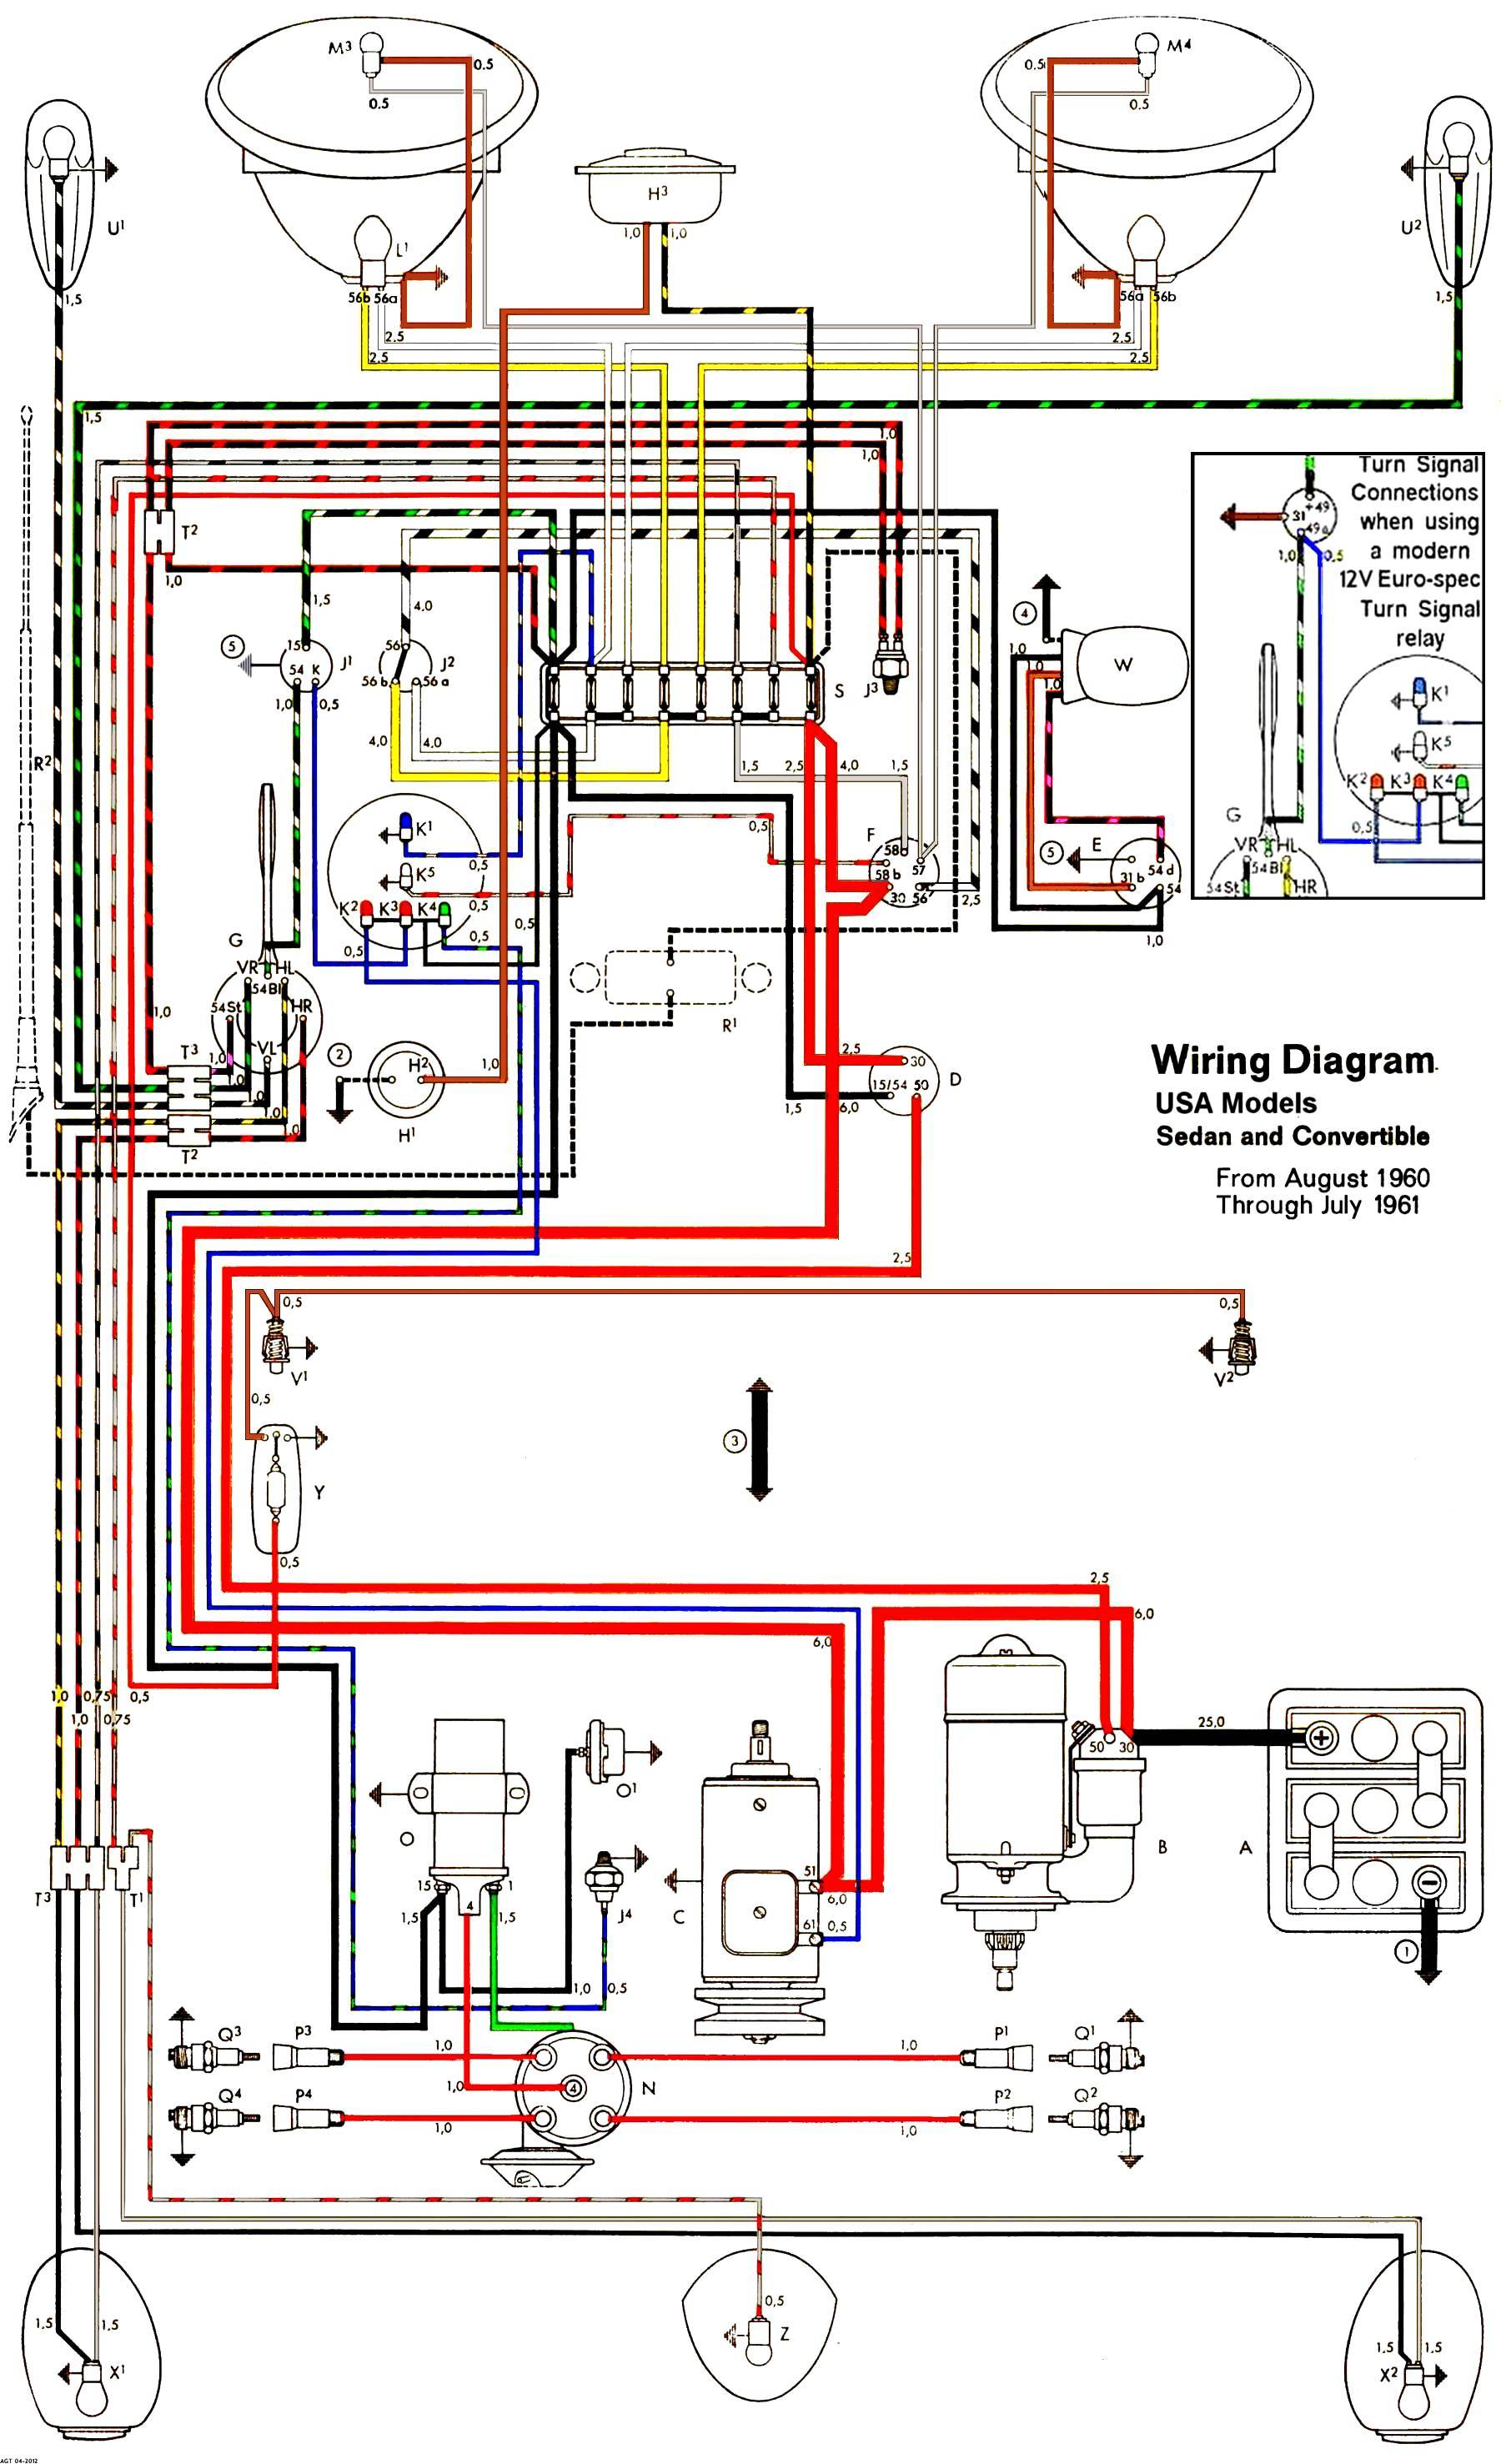 thesamba com type 1 wiring diagrams rh thesamba com 74 vw bug wiring diagram 1974 volkswagen beetle wiring diagram